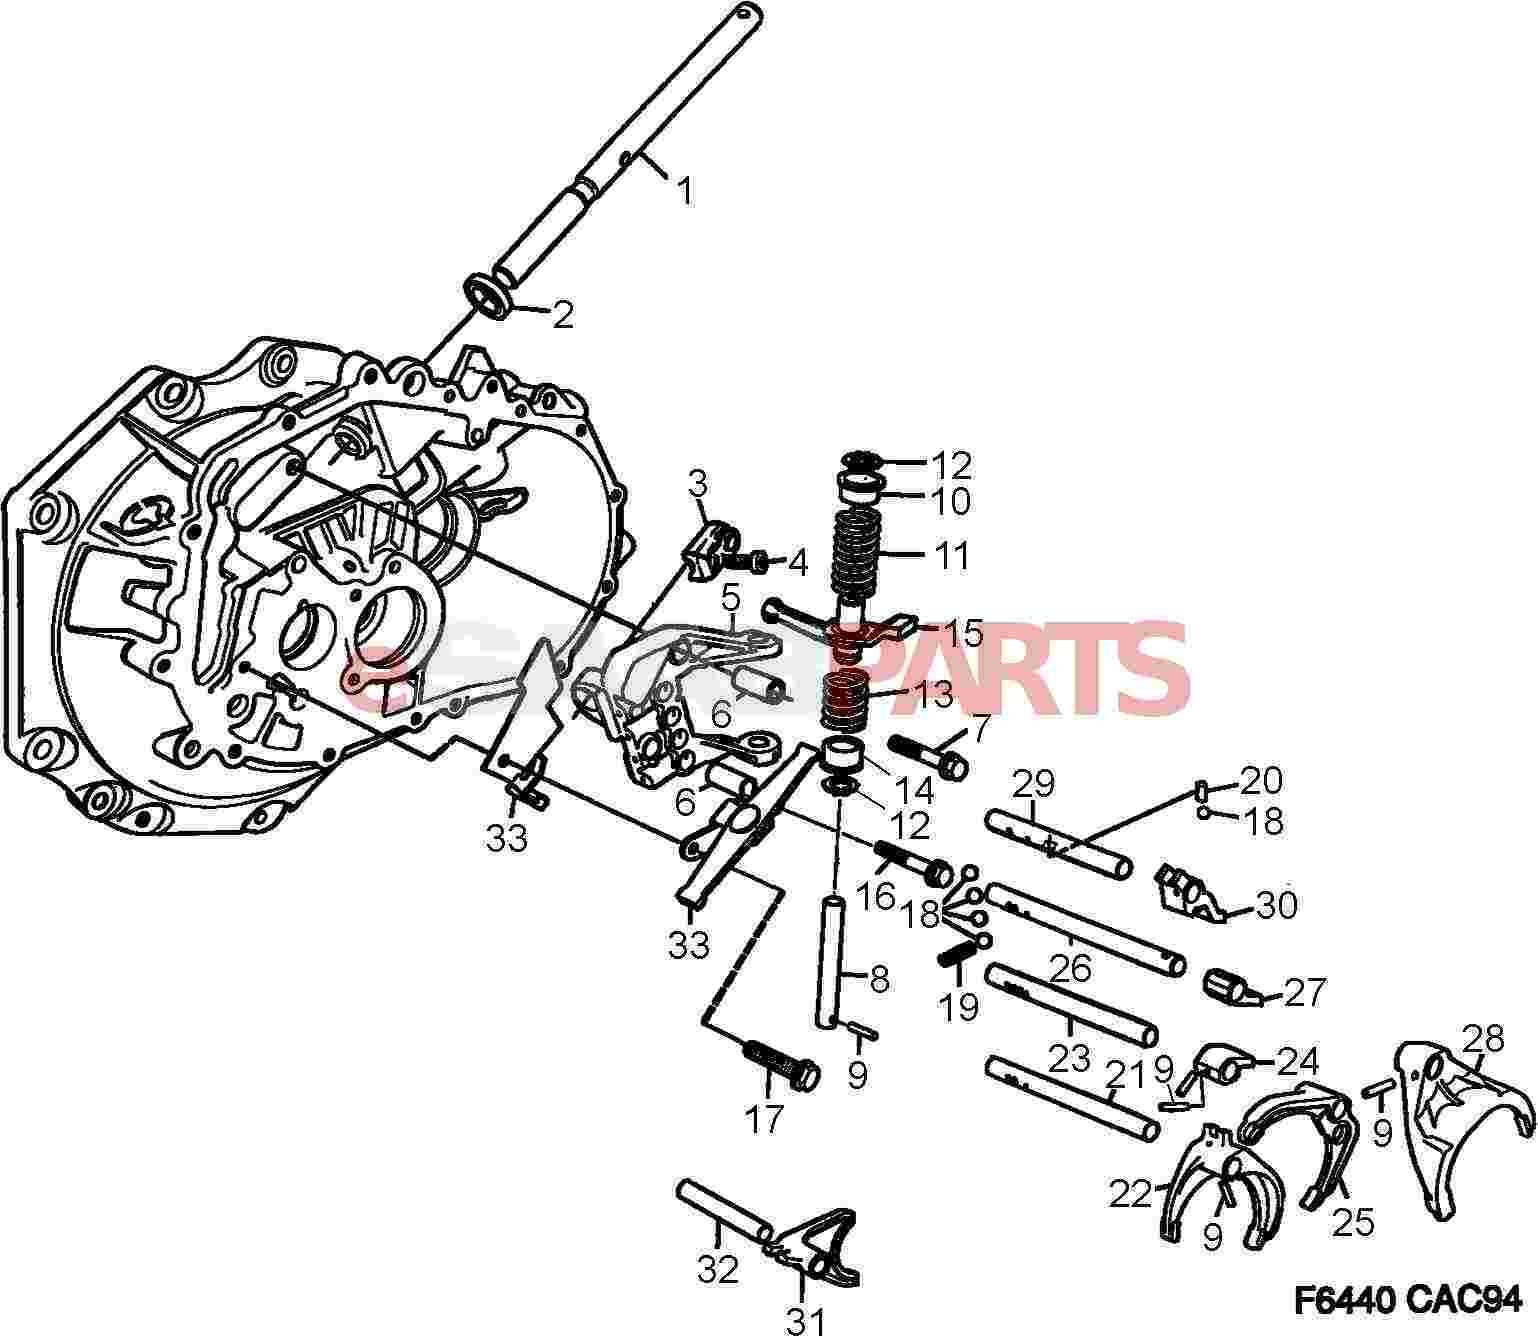 1998 saab 9000 manual transmission hub replacement